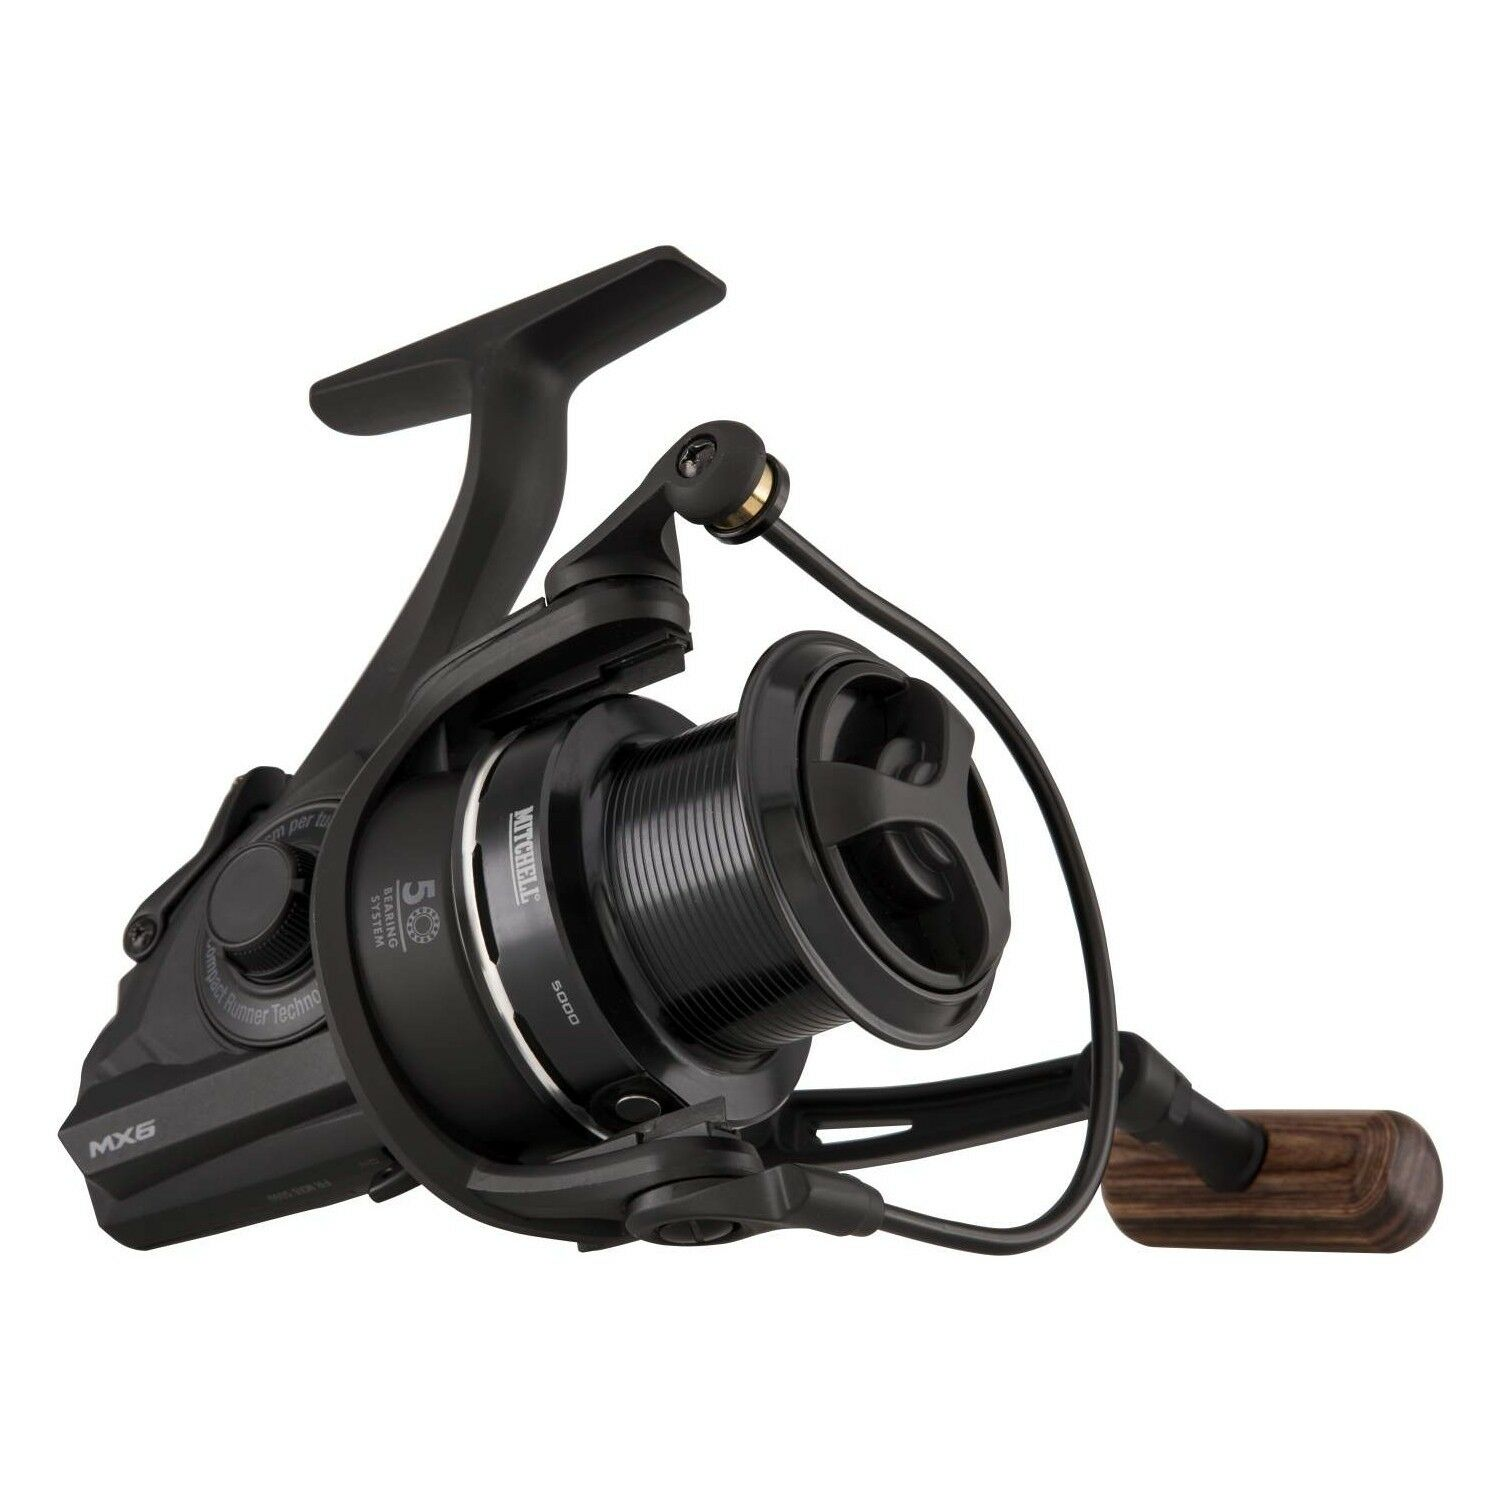 Mitchell NEW MX6 FULL RUNNER  Free Spool Carp Fishing Reel - All Sizes  is discounted